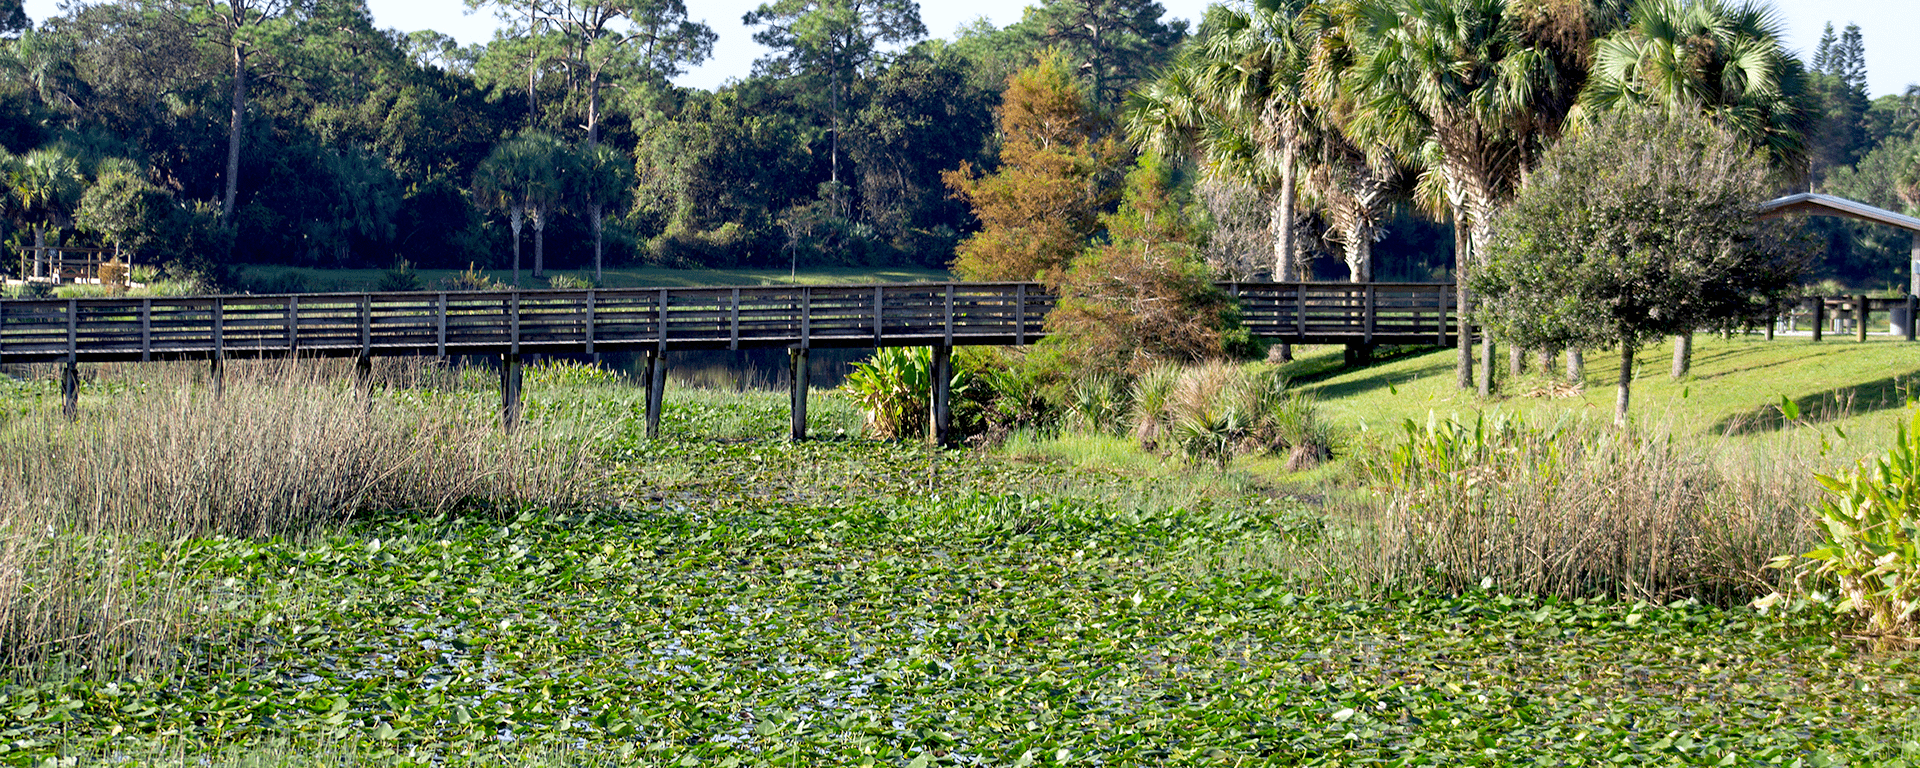 A boardwalk over the lake at Phipps Park